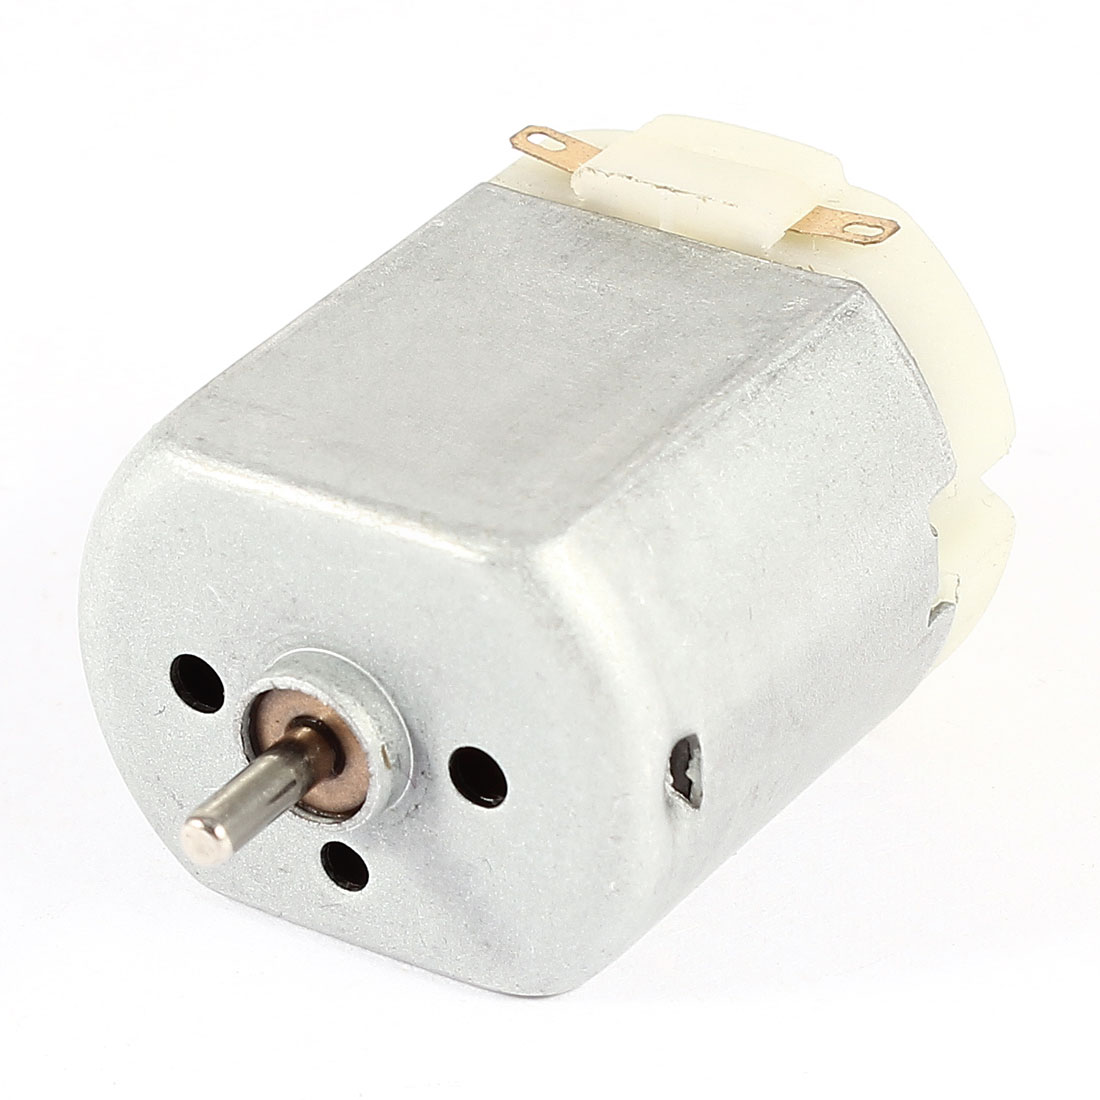 Magnetic-High-Torque-Speed-Gear-Box-Micro-Electric-Motor-DC-12V-10000RPM